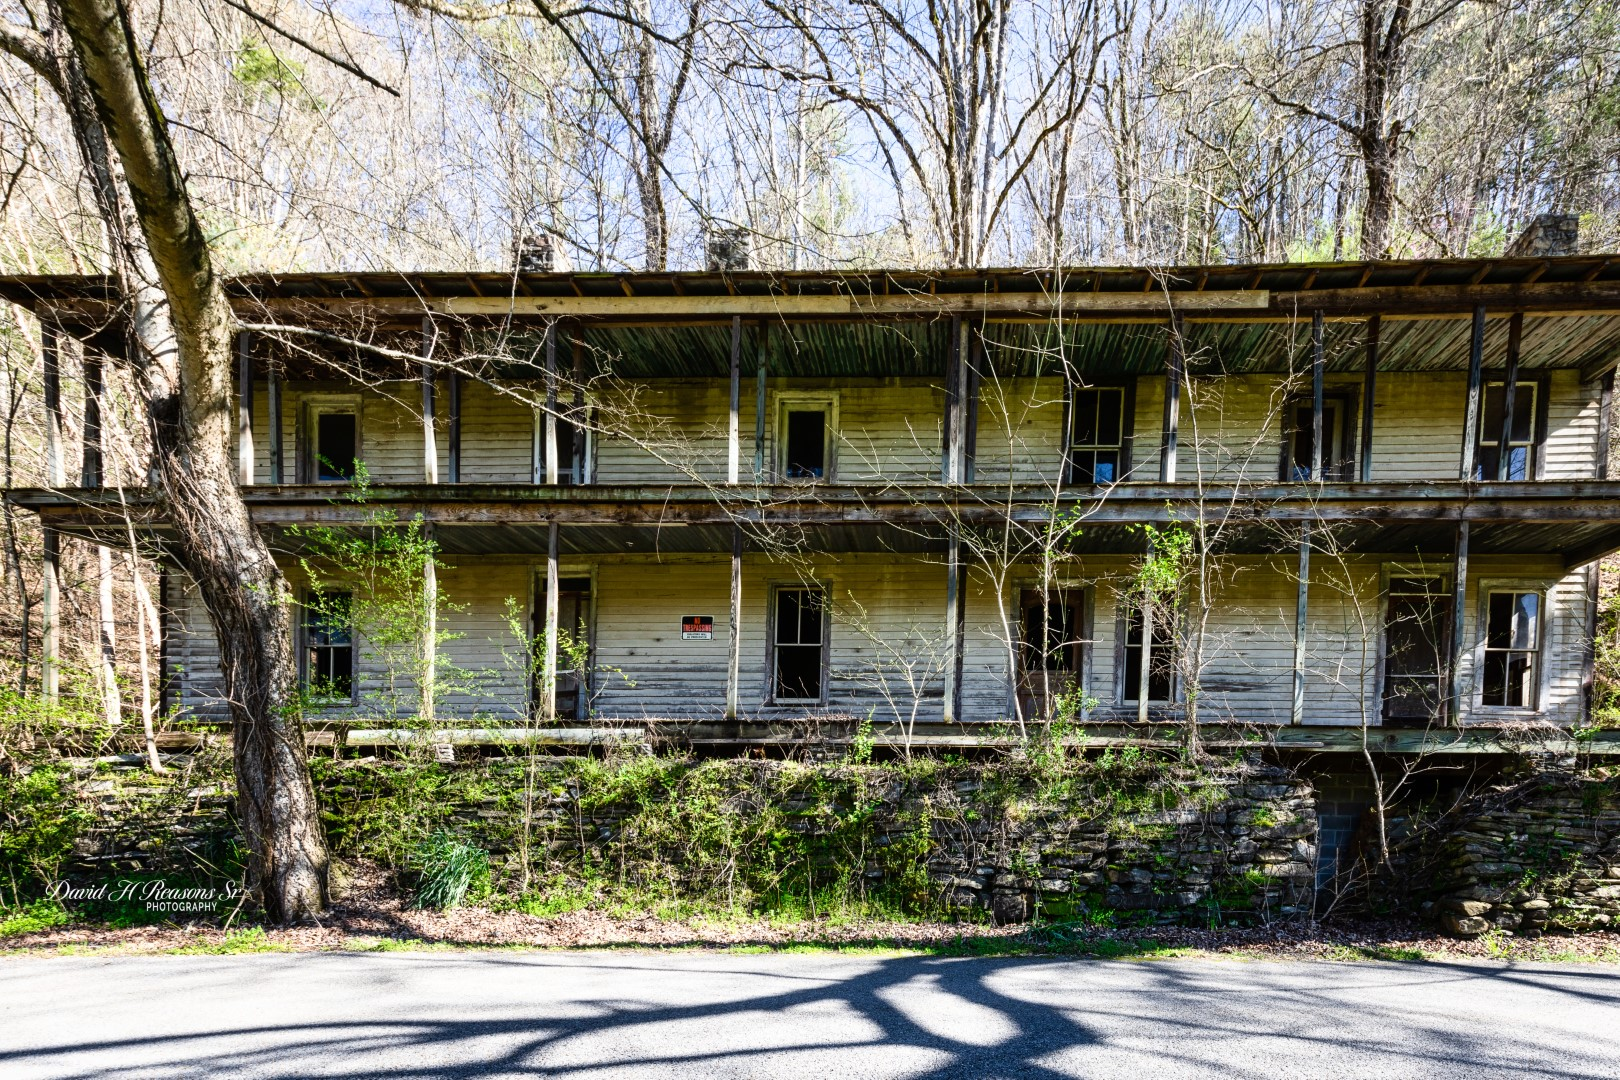 Mr. Higdon built the hotel on the Hiwassee River after he learned that the L&N Railroad planned to build a railroad that would come through Polk County, Tennessee.